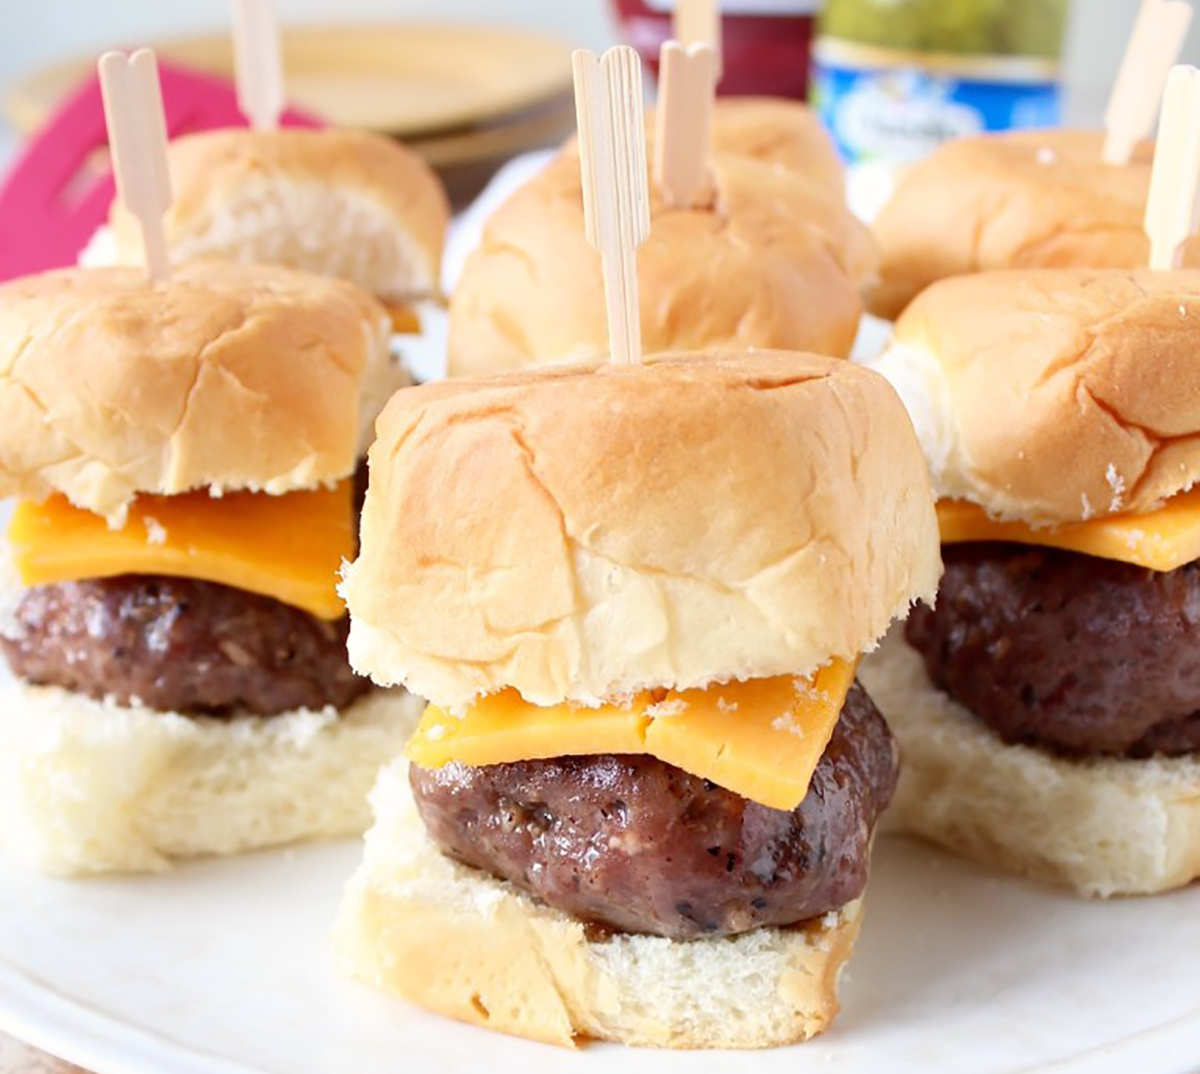 Friday Favorites - Taking a Big Bite - Sous Vide Sliders